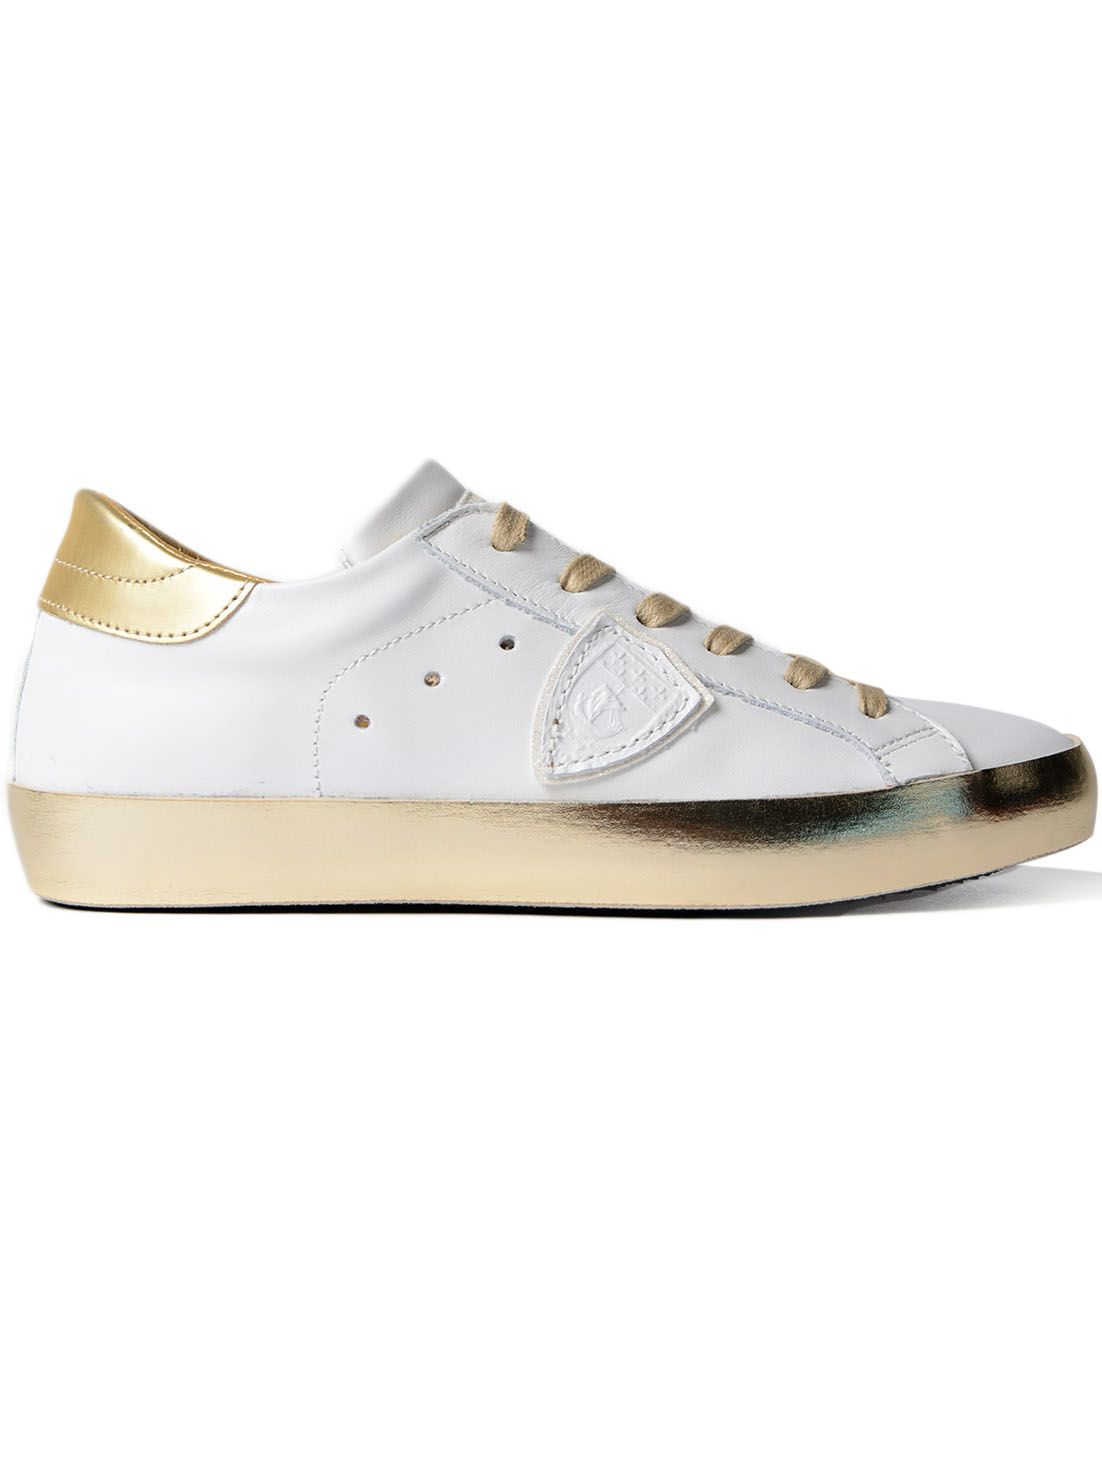 Philippe Model Paris Lamine Sneakers